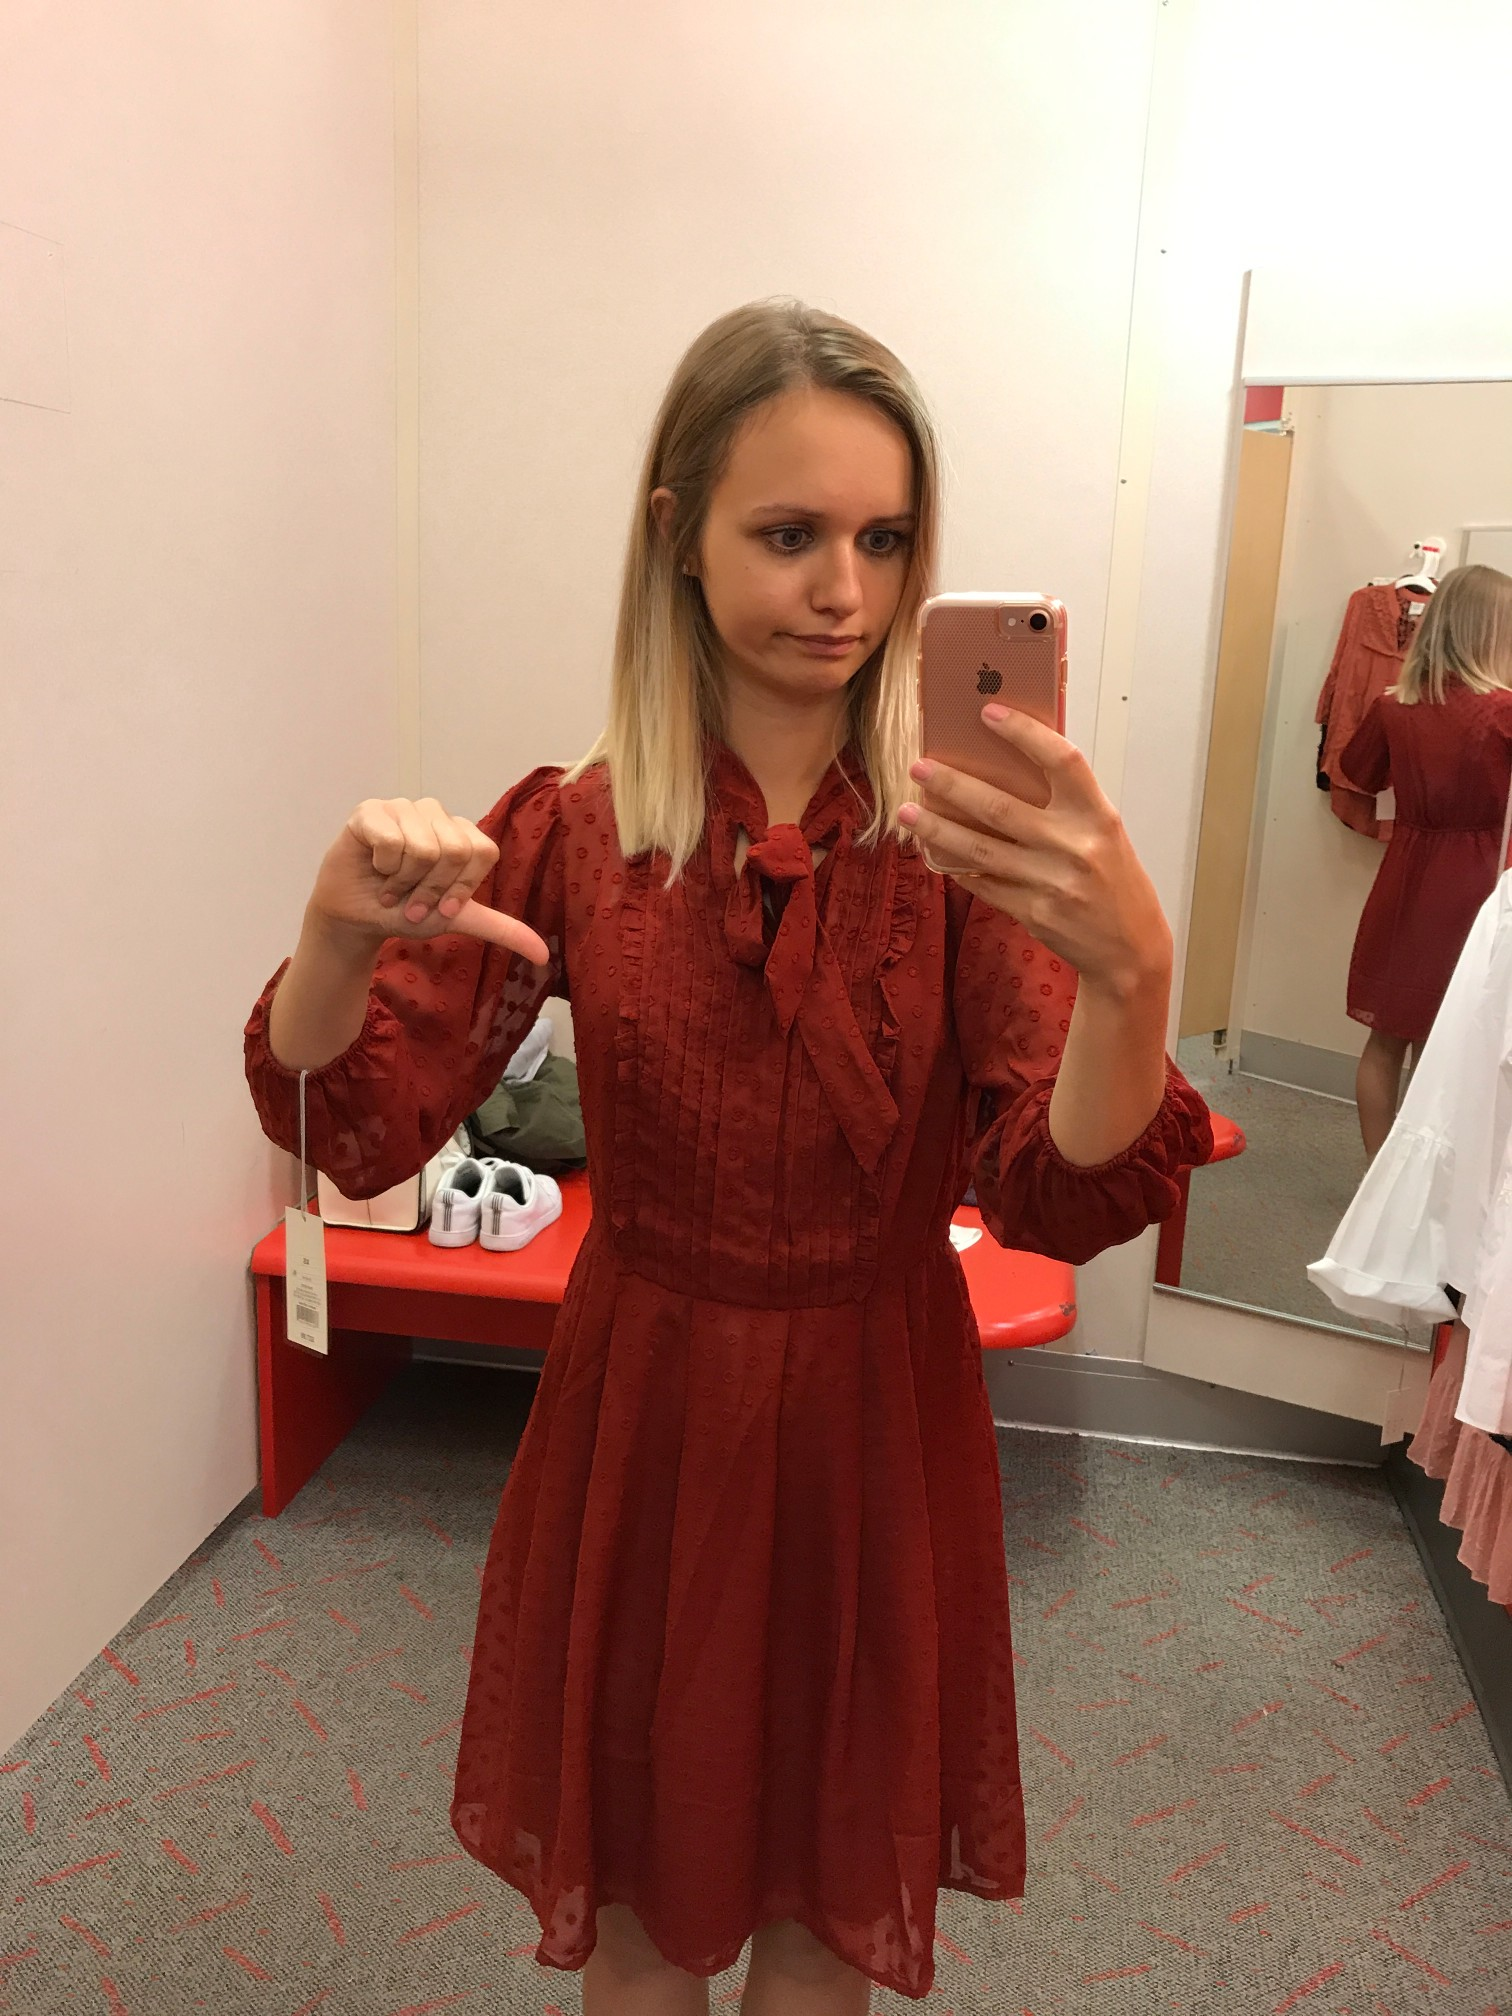 Target A New Day Ruffle Tie Neck A-Line Dress fitting room adventures little things olga connecticut style blog